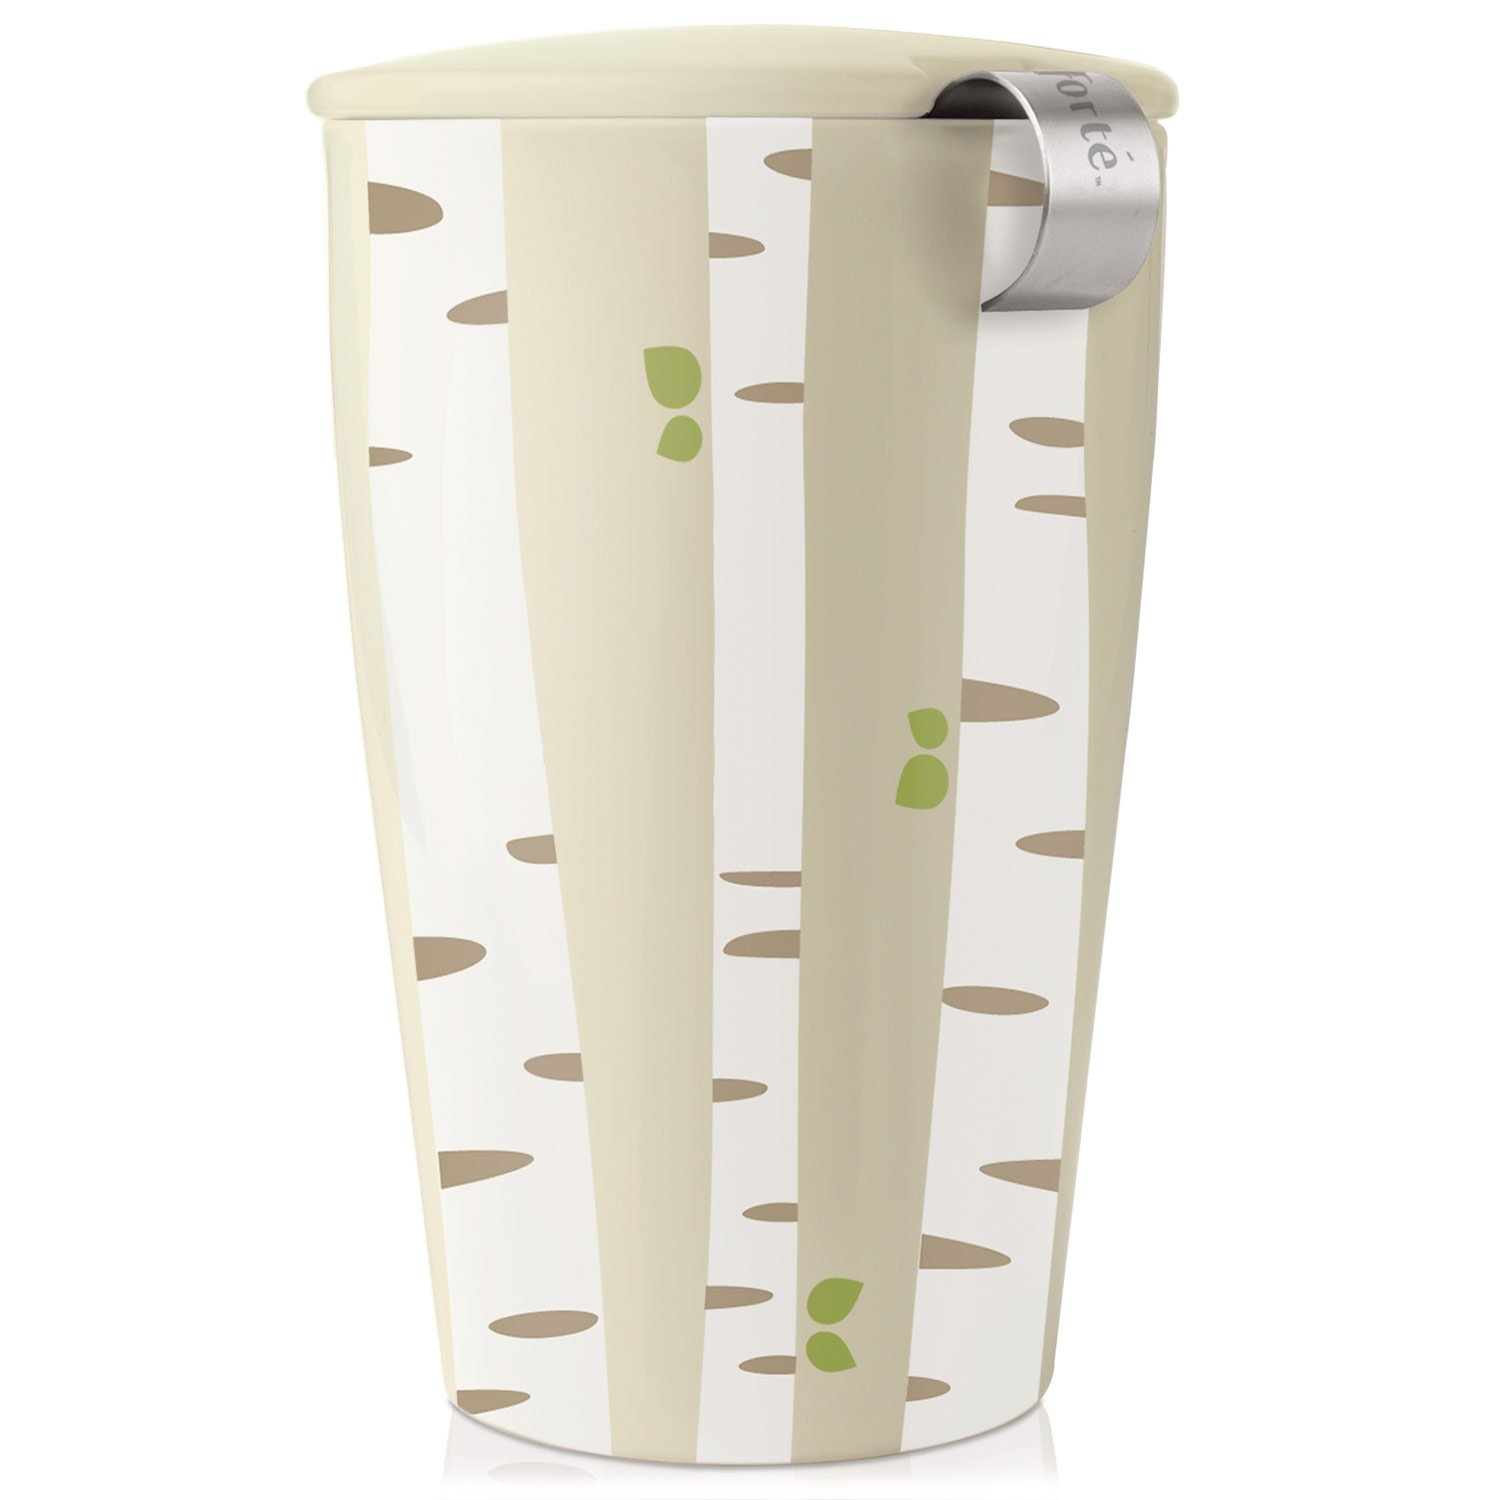 Tea Forté KATI Cup Ceramic Tea Brewing Cup with Infuser Basket and Lid for Steeping, Loose Leaf Tea Maker, Birch Forest Tea Forte